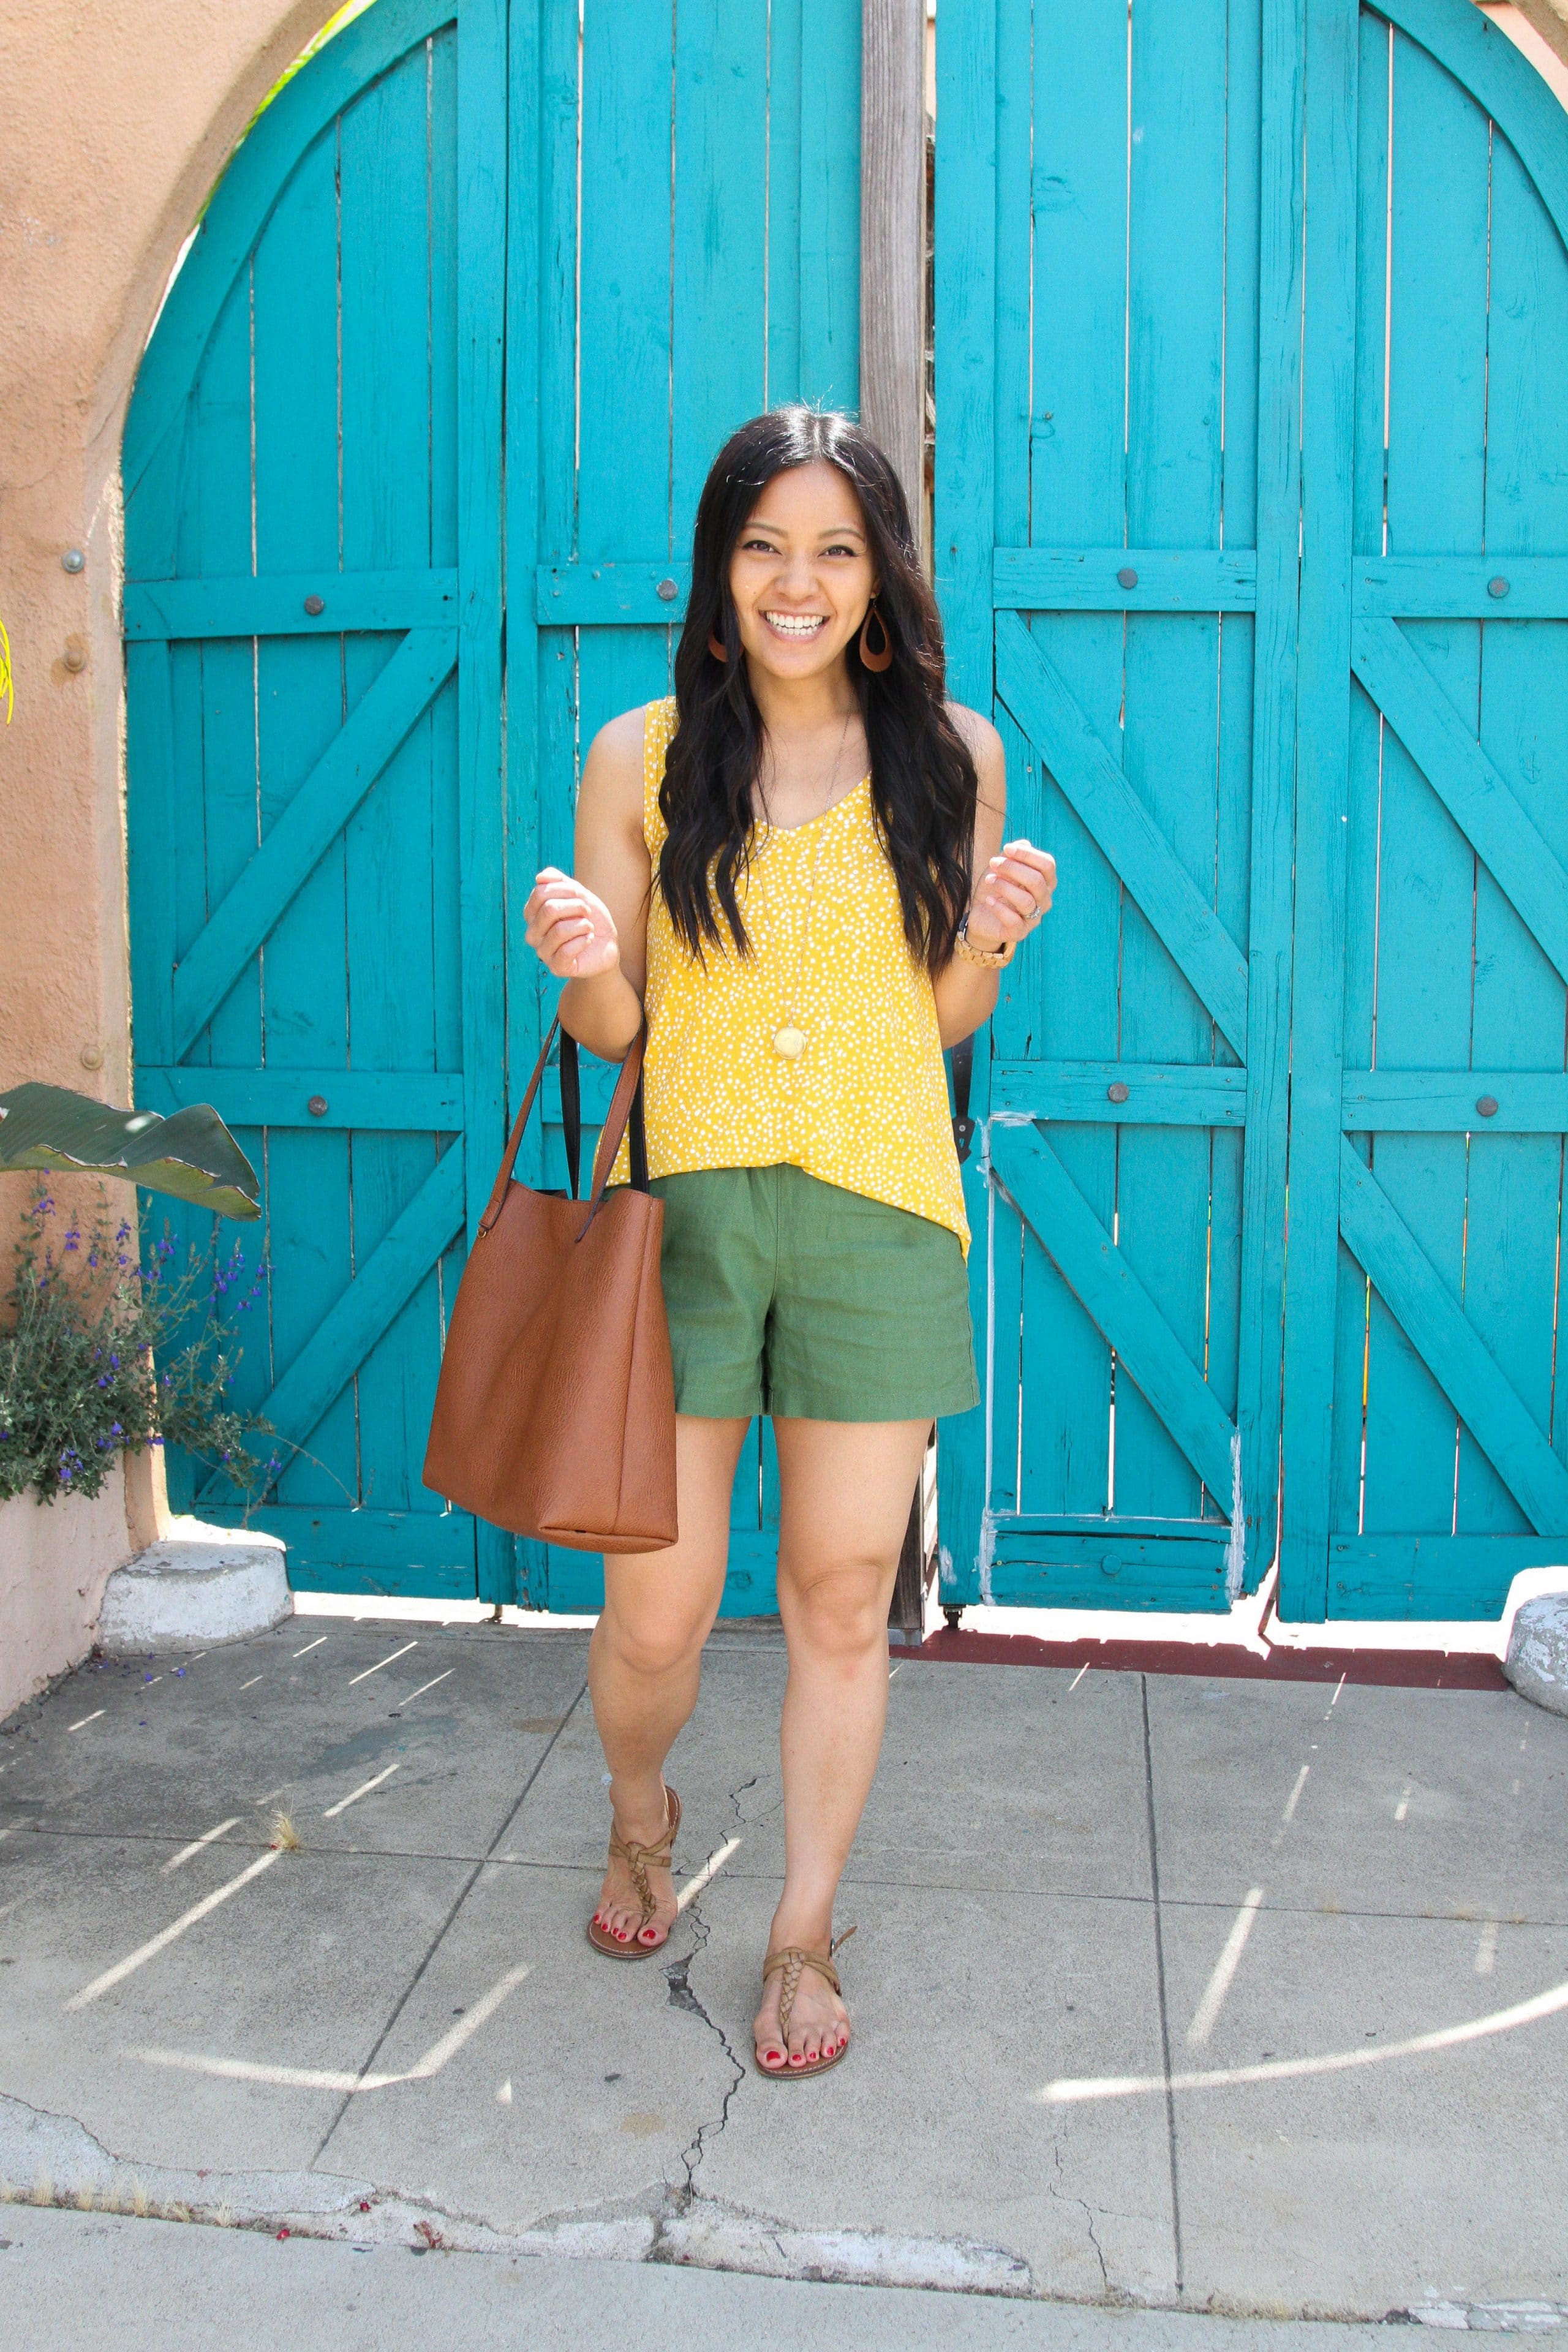 olive shorts + yellow tank top + bag + tan sandals